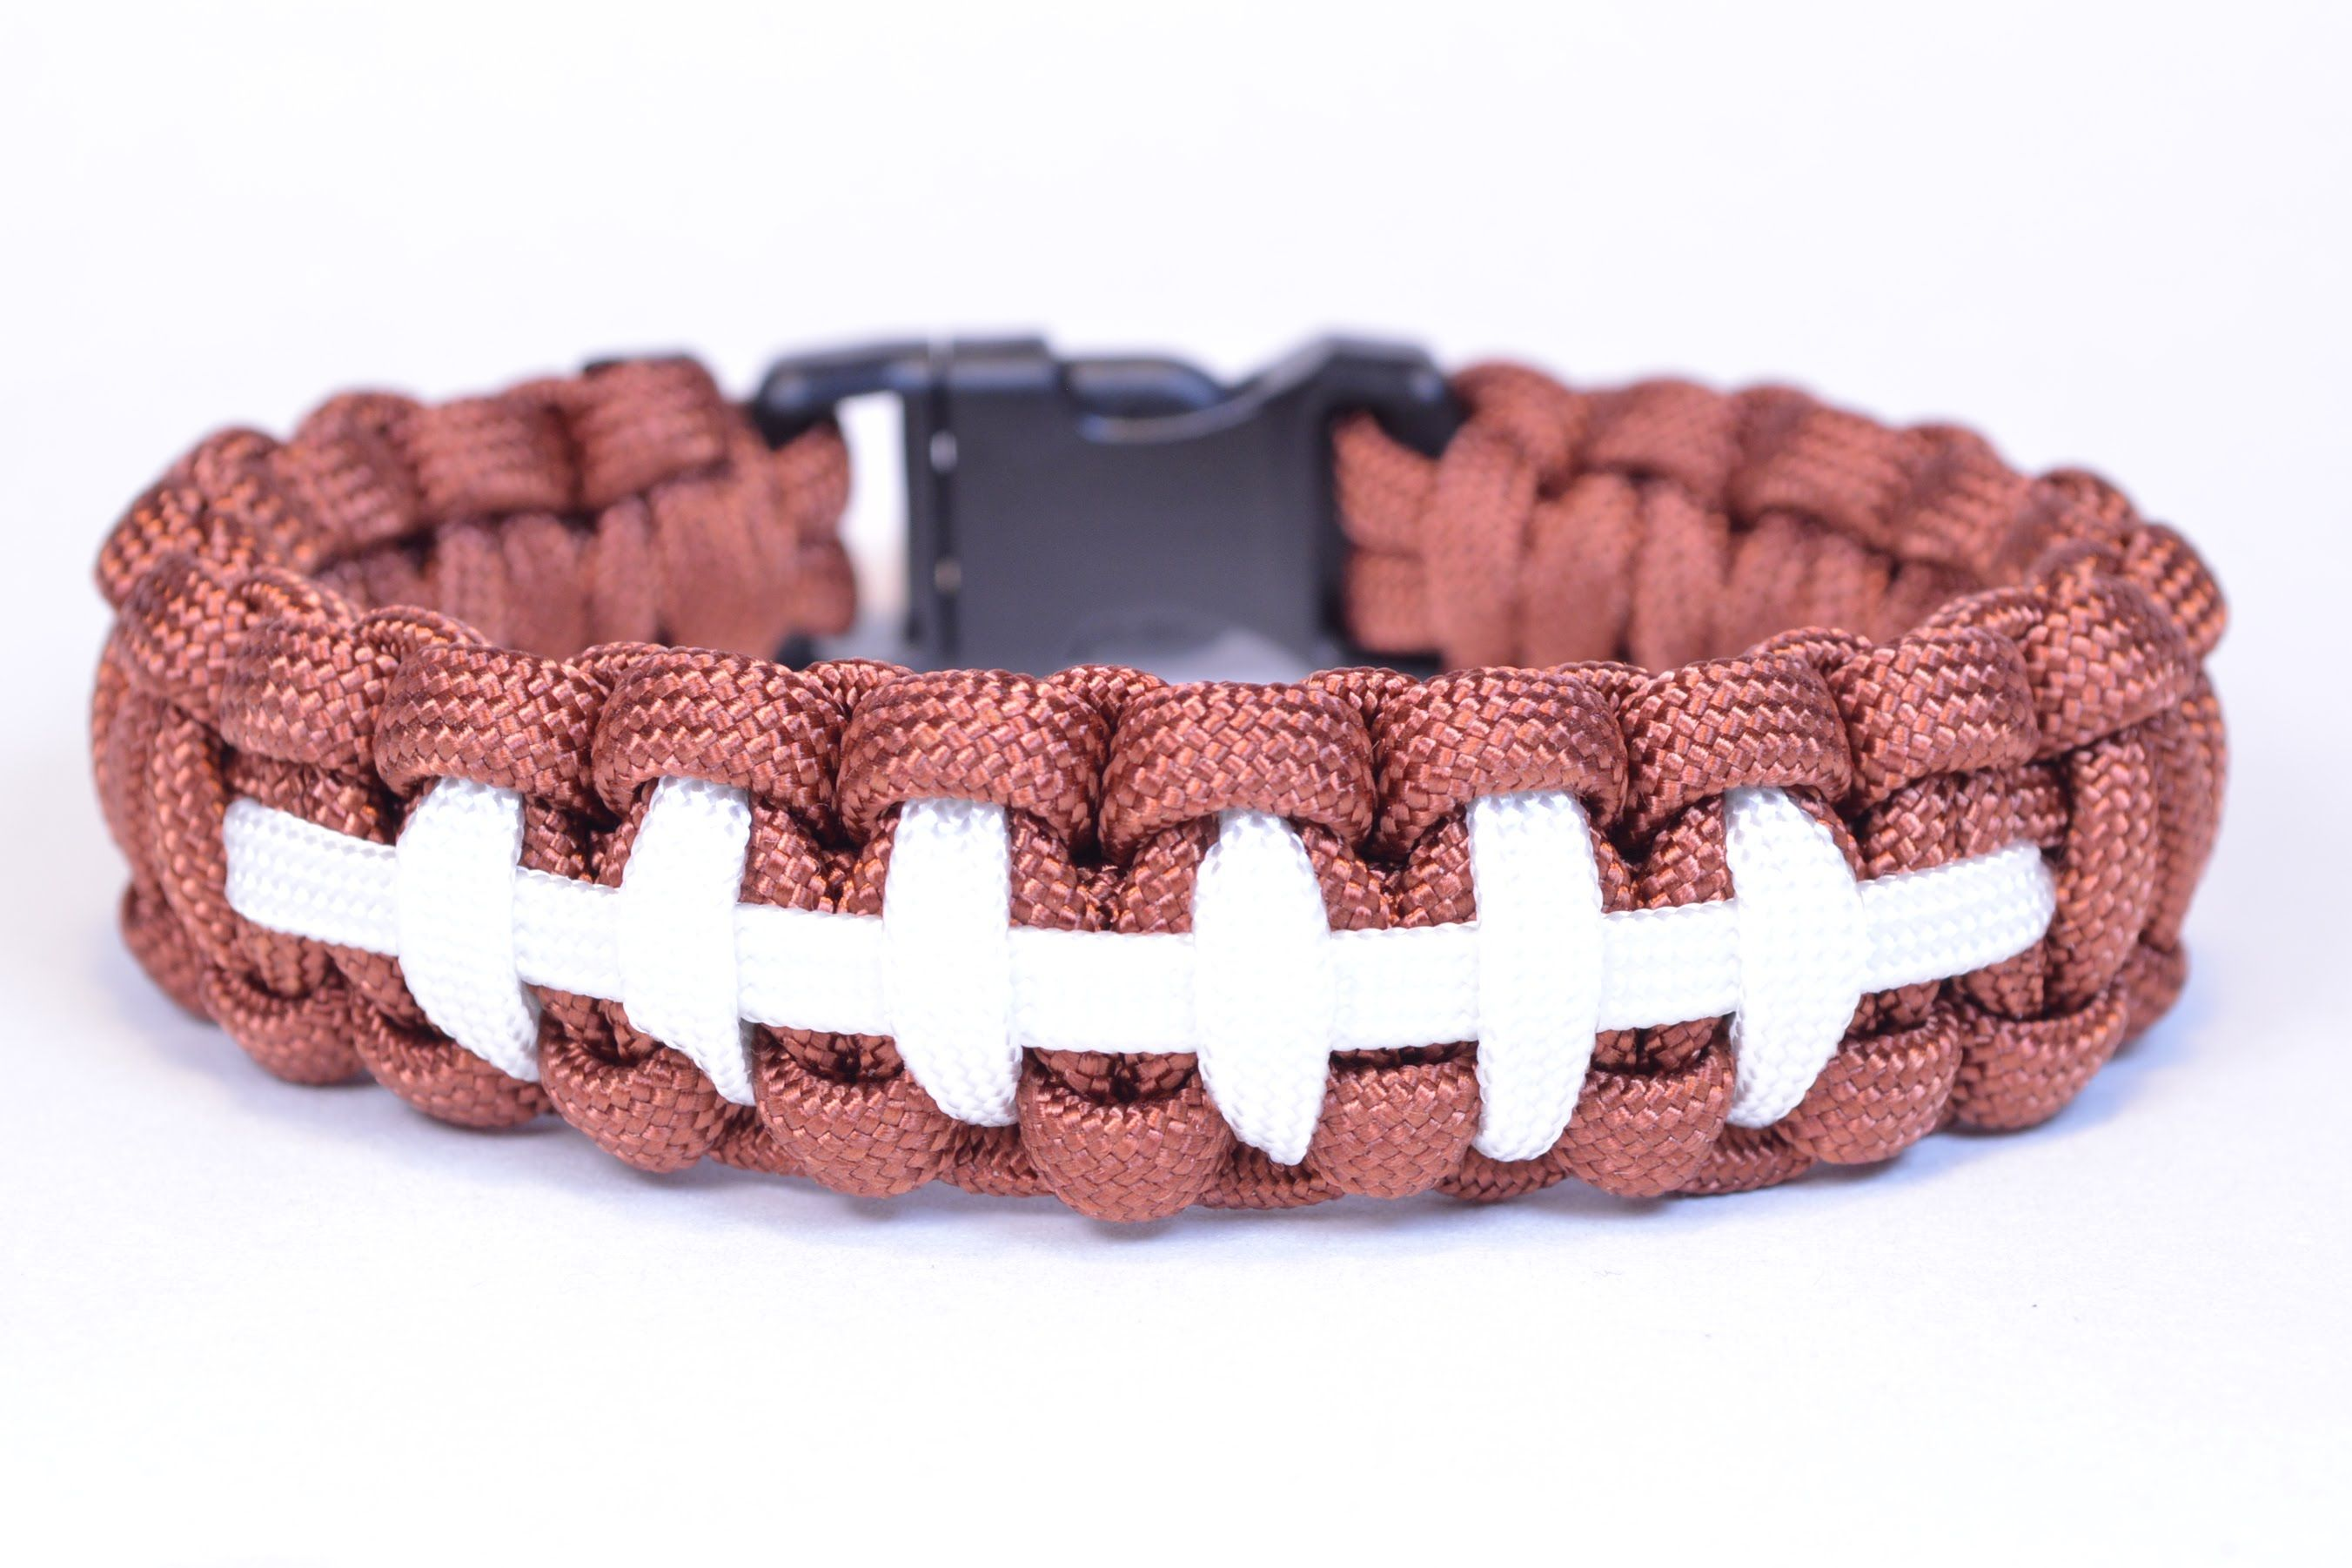 Saw A Lot Of Interest In The Football Bracelet Design From